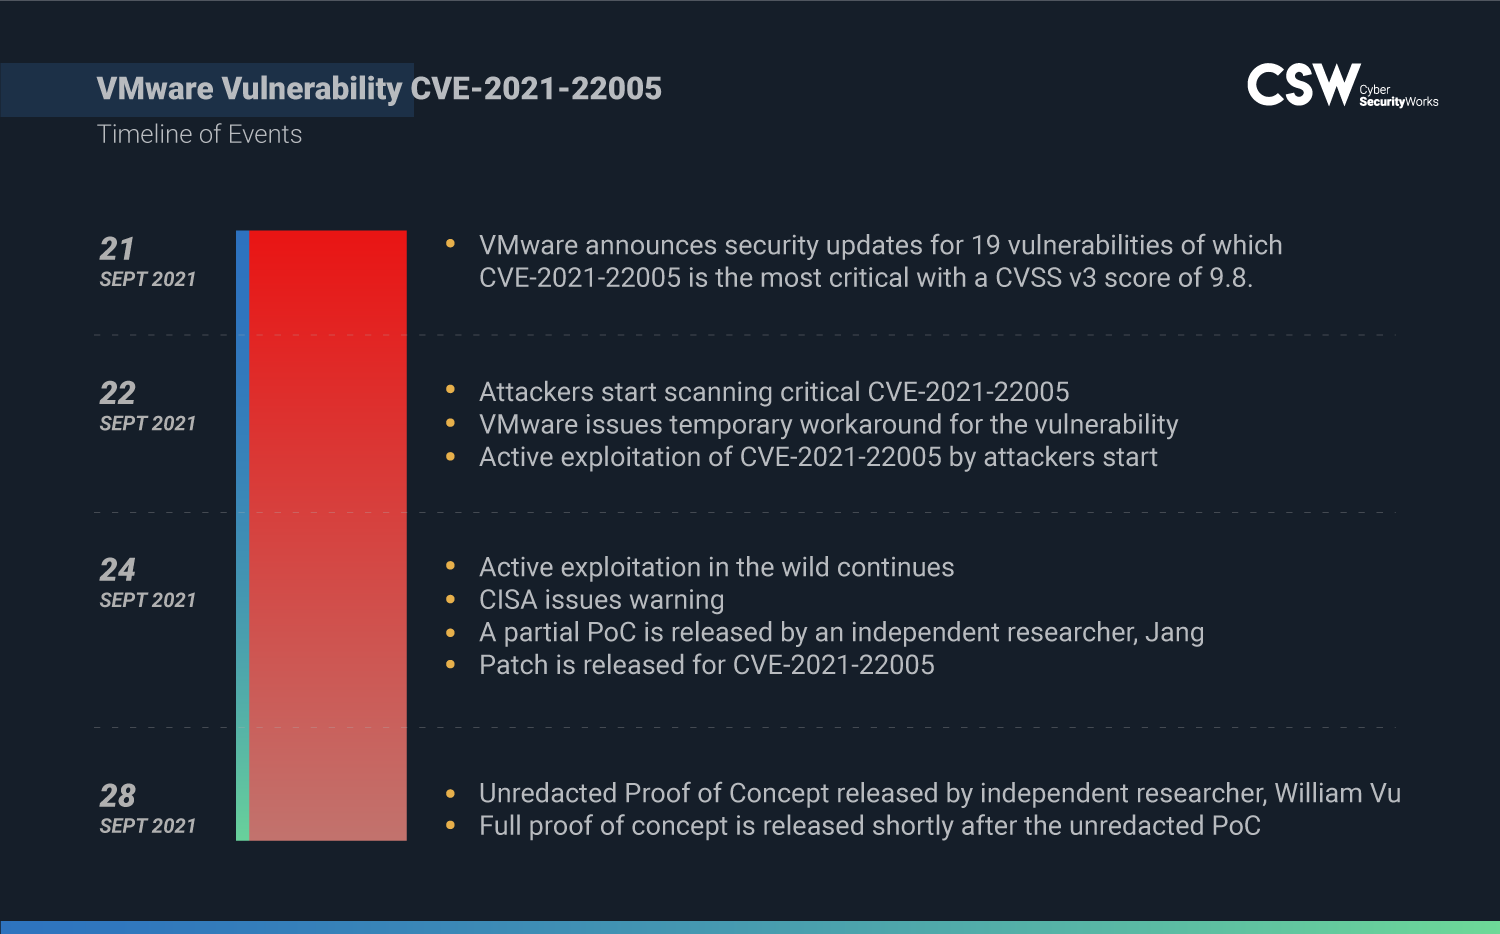 VMware Vulnerability Timeline of Events